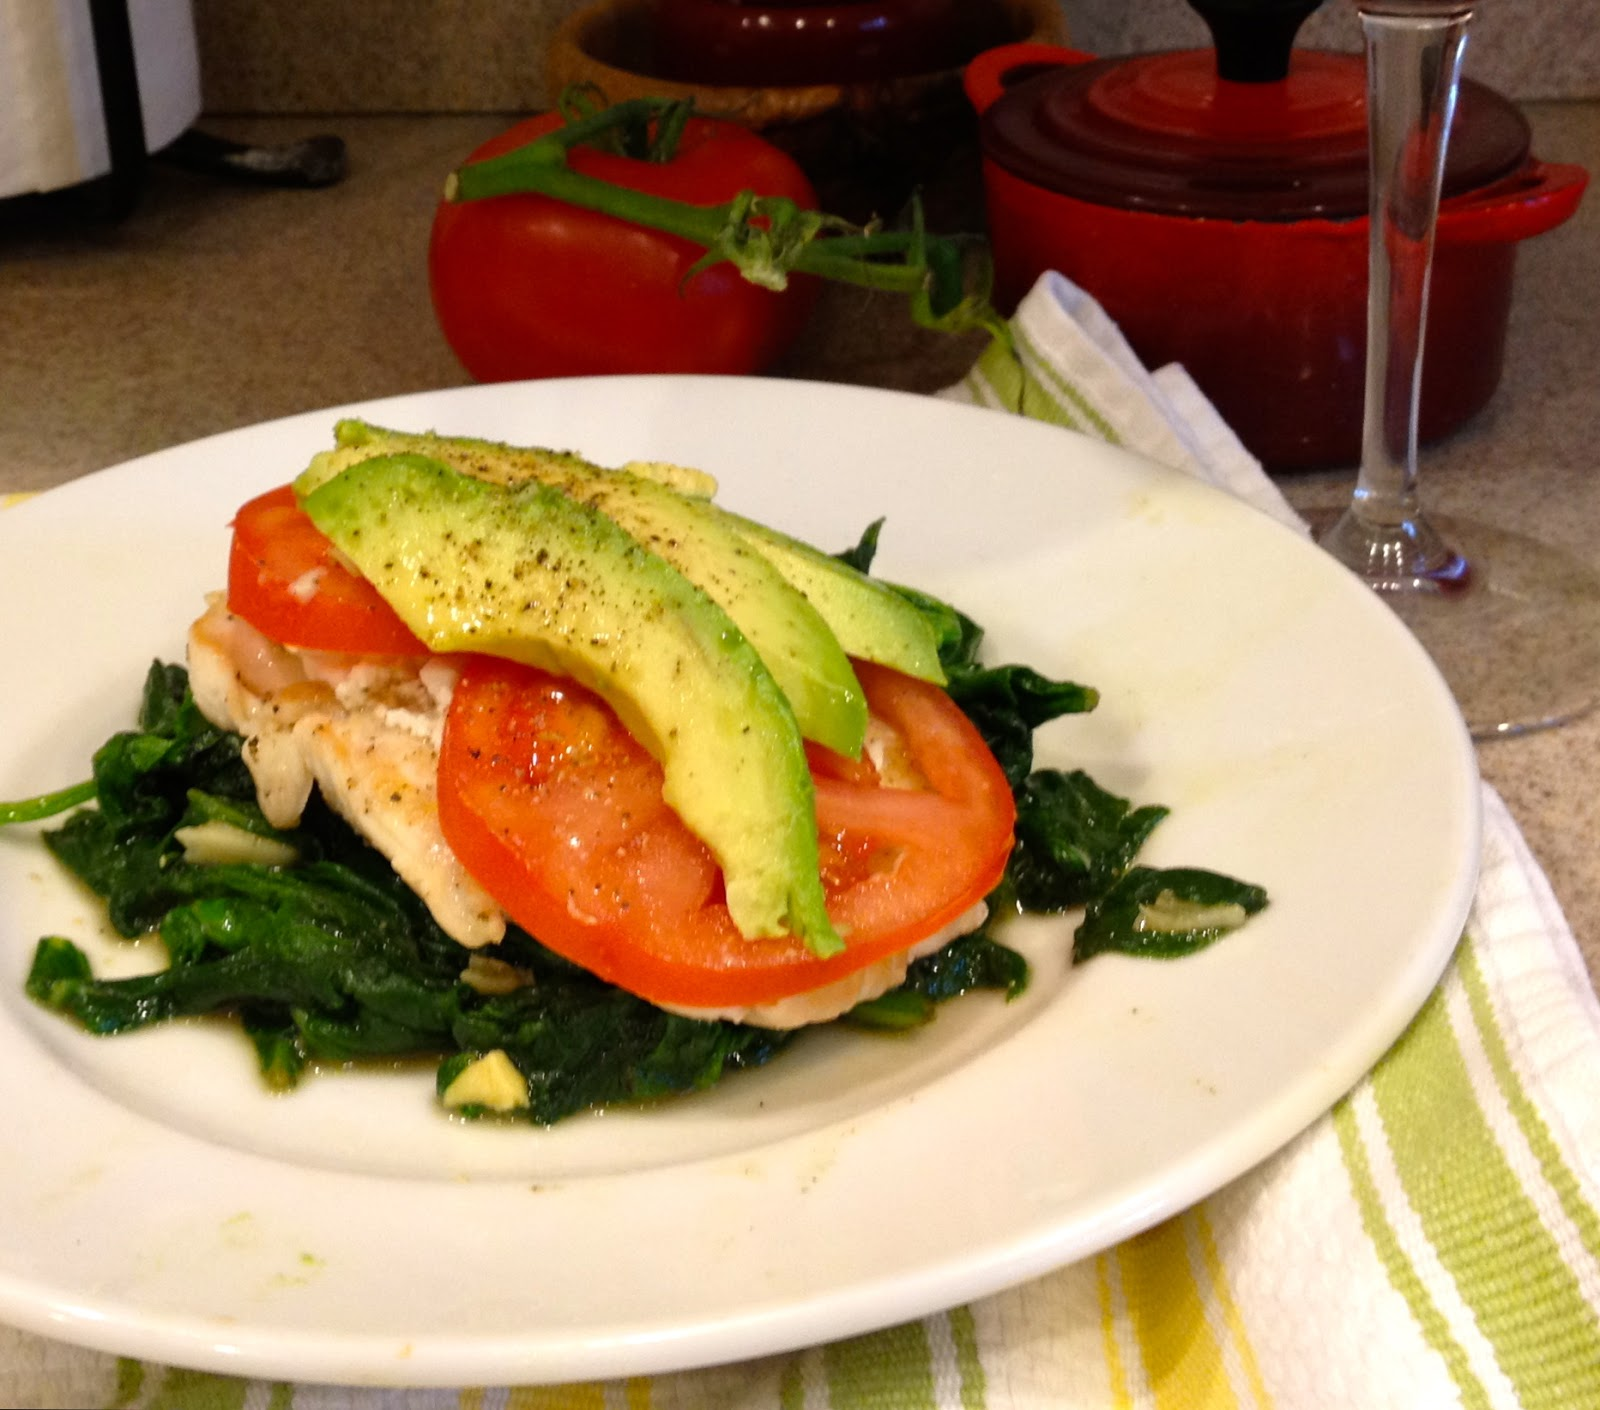 Margie O'Hara - A Creative Life: Chicken over Spinach with ...